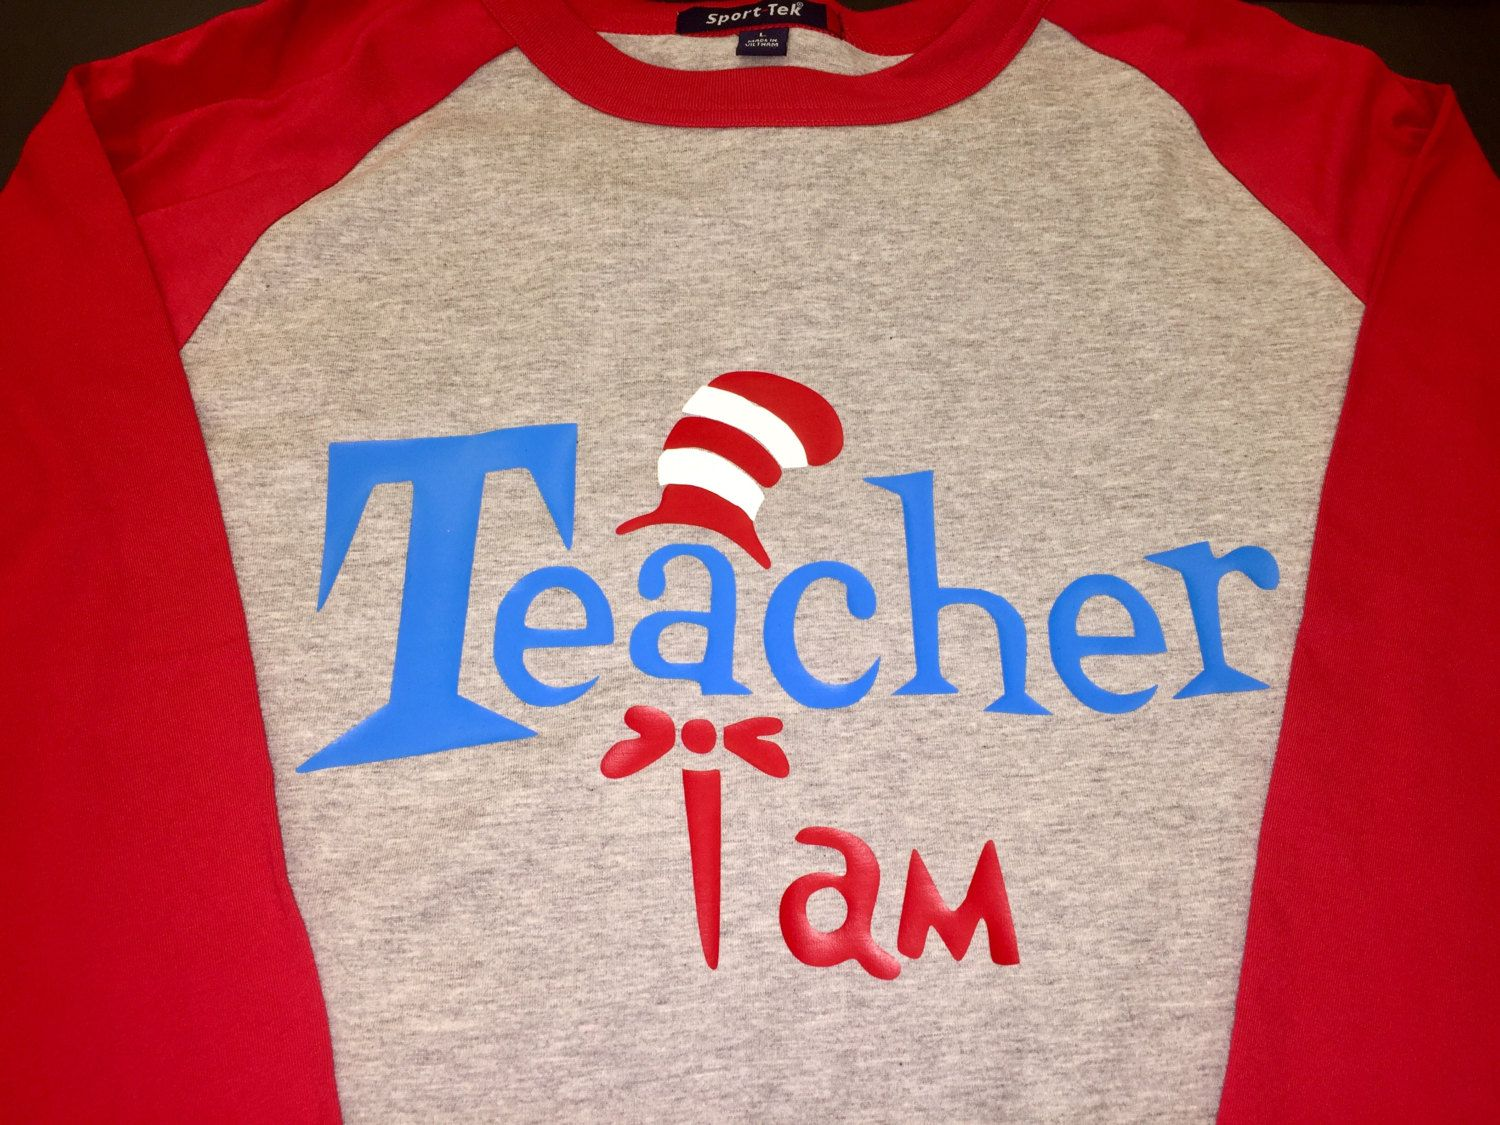 cda981ce Dr. Seuss Inspired Personalized TShirts by HeyYallandCo on Etsy ...